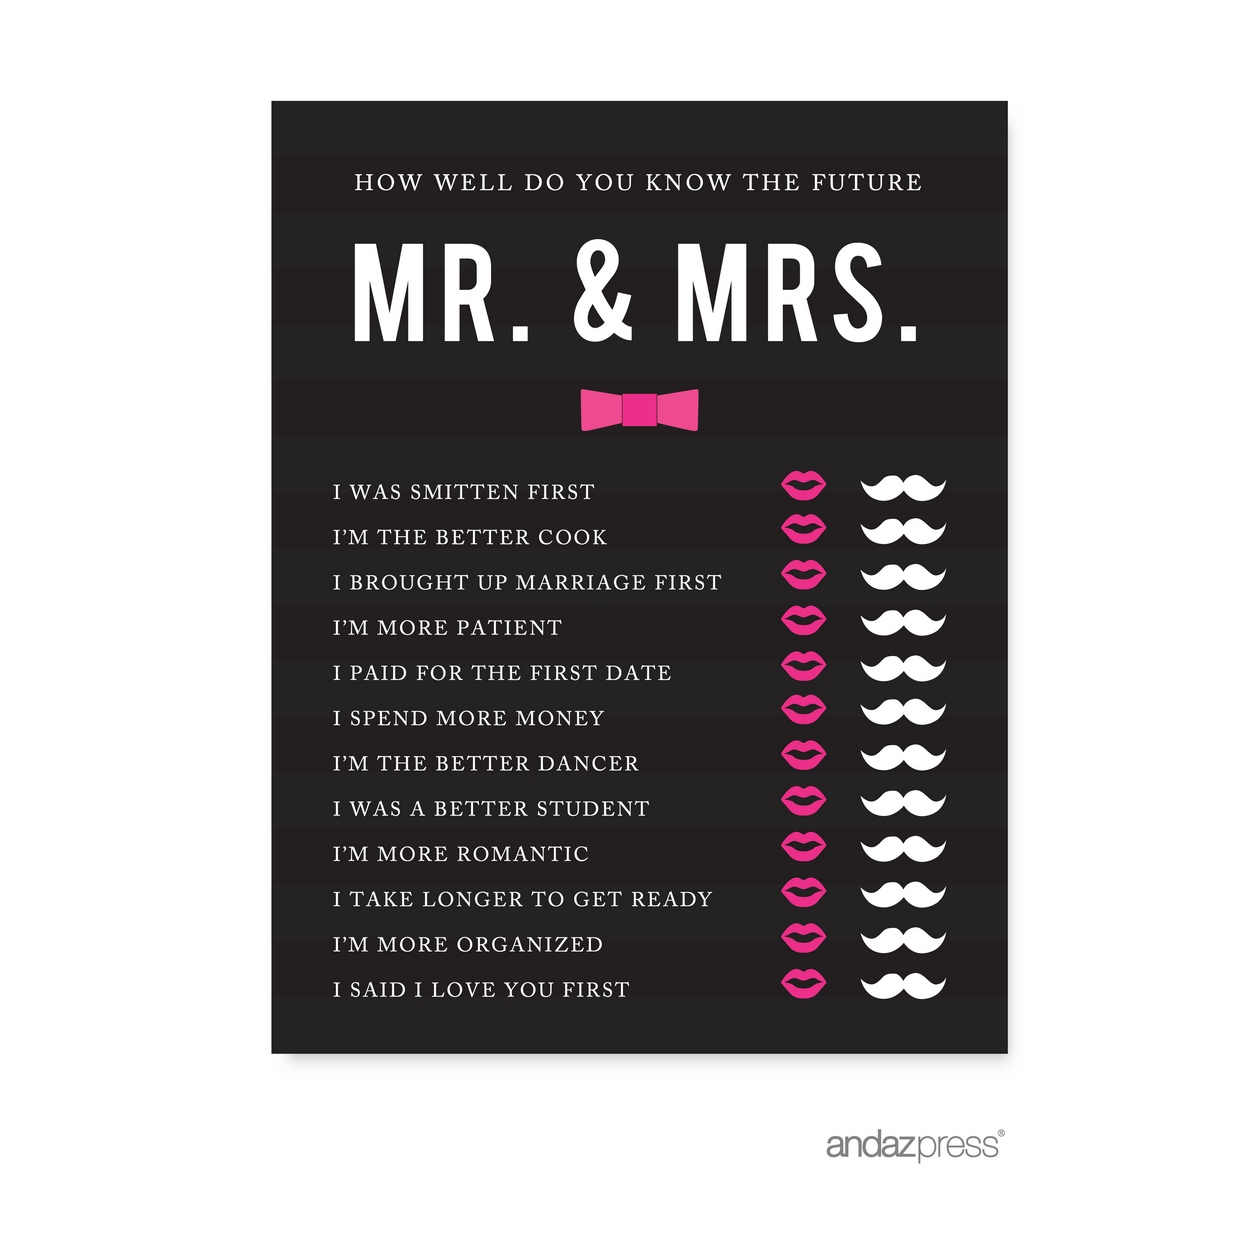 Mr And Mrs Quiz: How Well Do You Know The Future Mr./Mrs.? Modern Black And